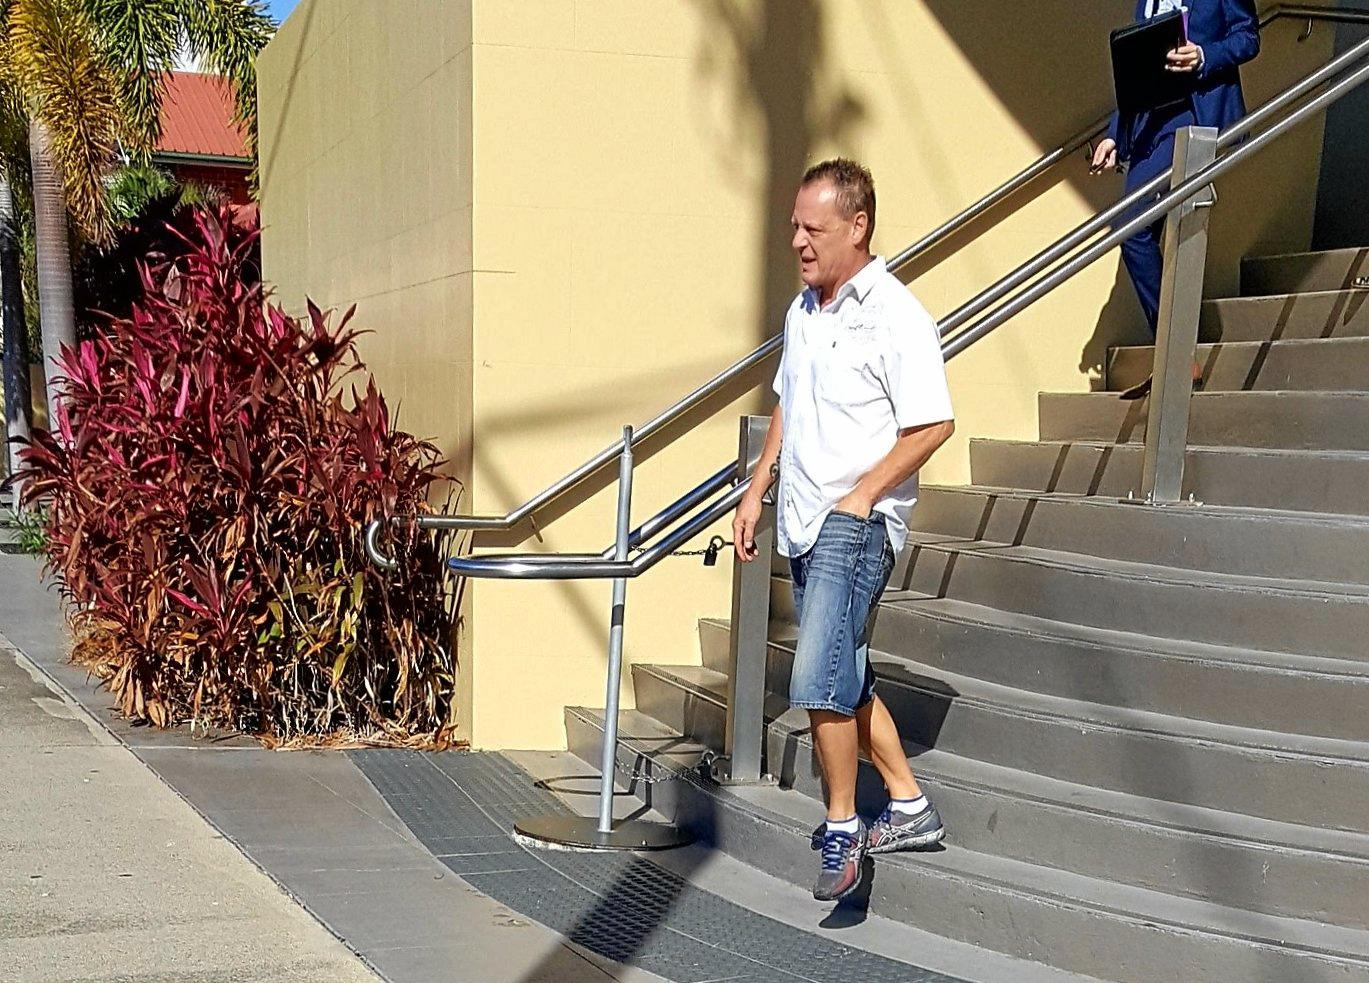 Bernardus Doves, 51, from Balnagowan faced Mackay Magistrates Court charged with entering premises with intent and wilful damage.